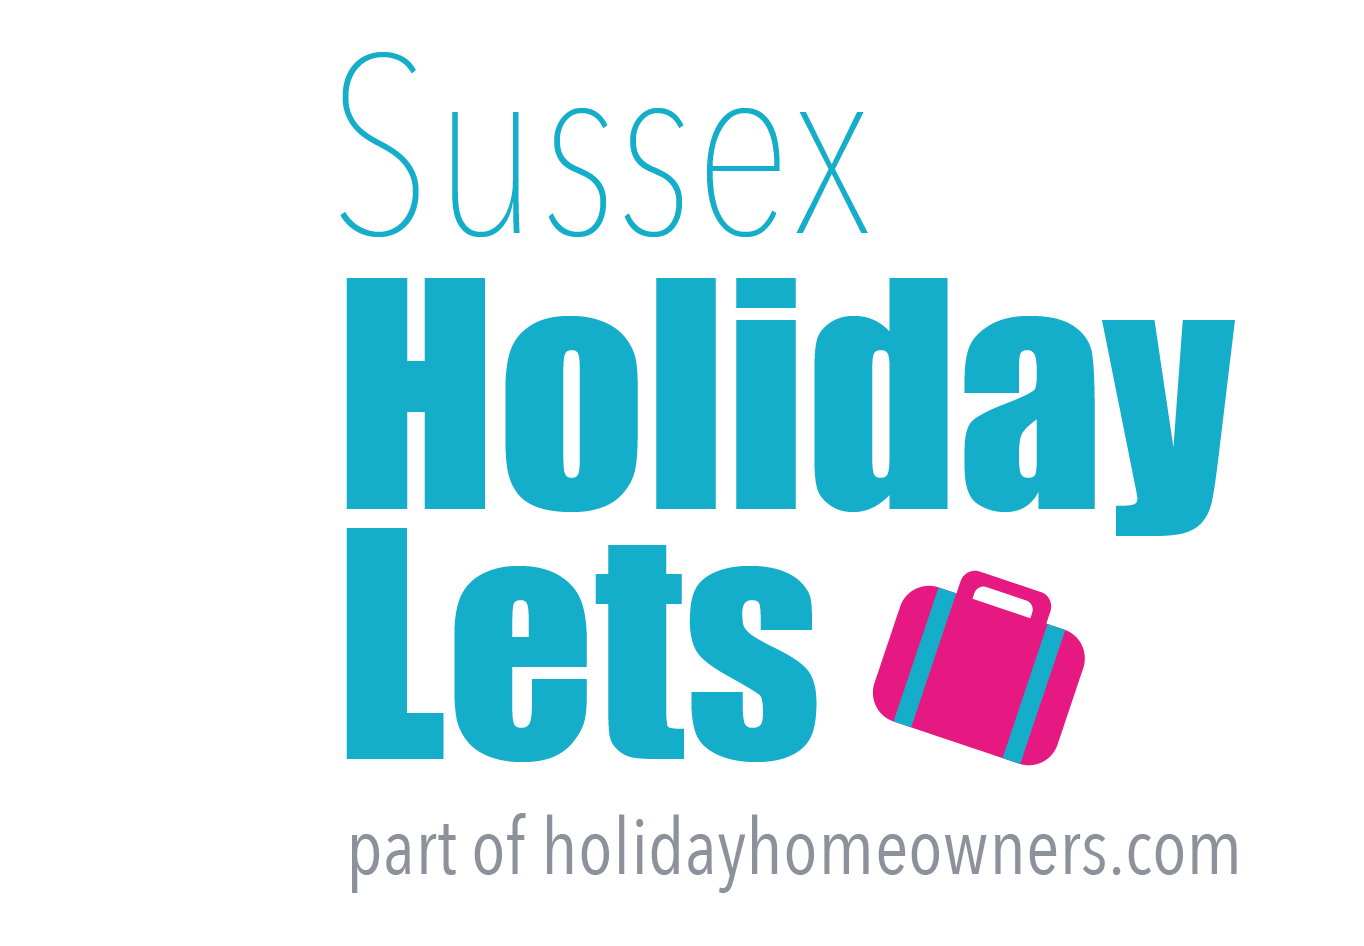 Sussex Holiday Lets